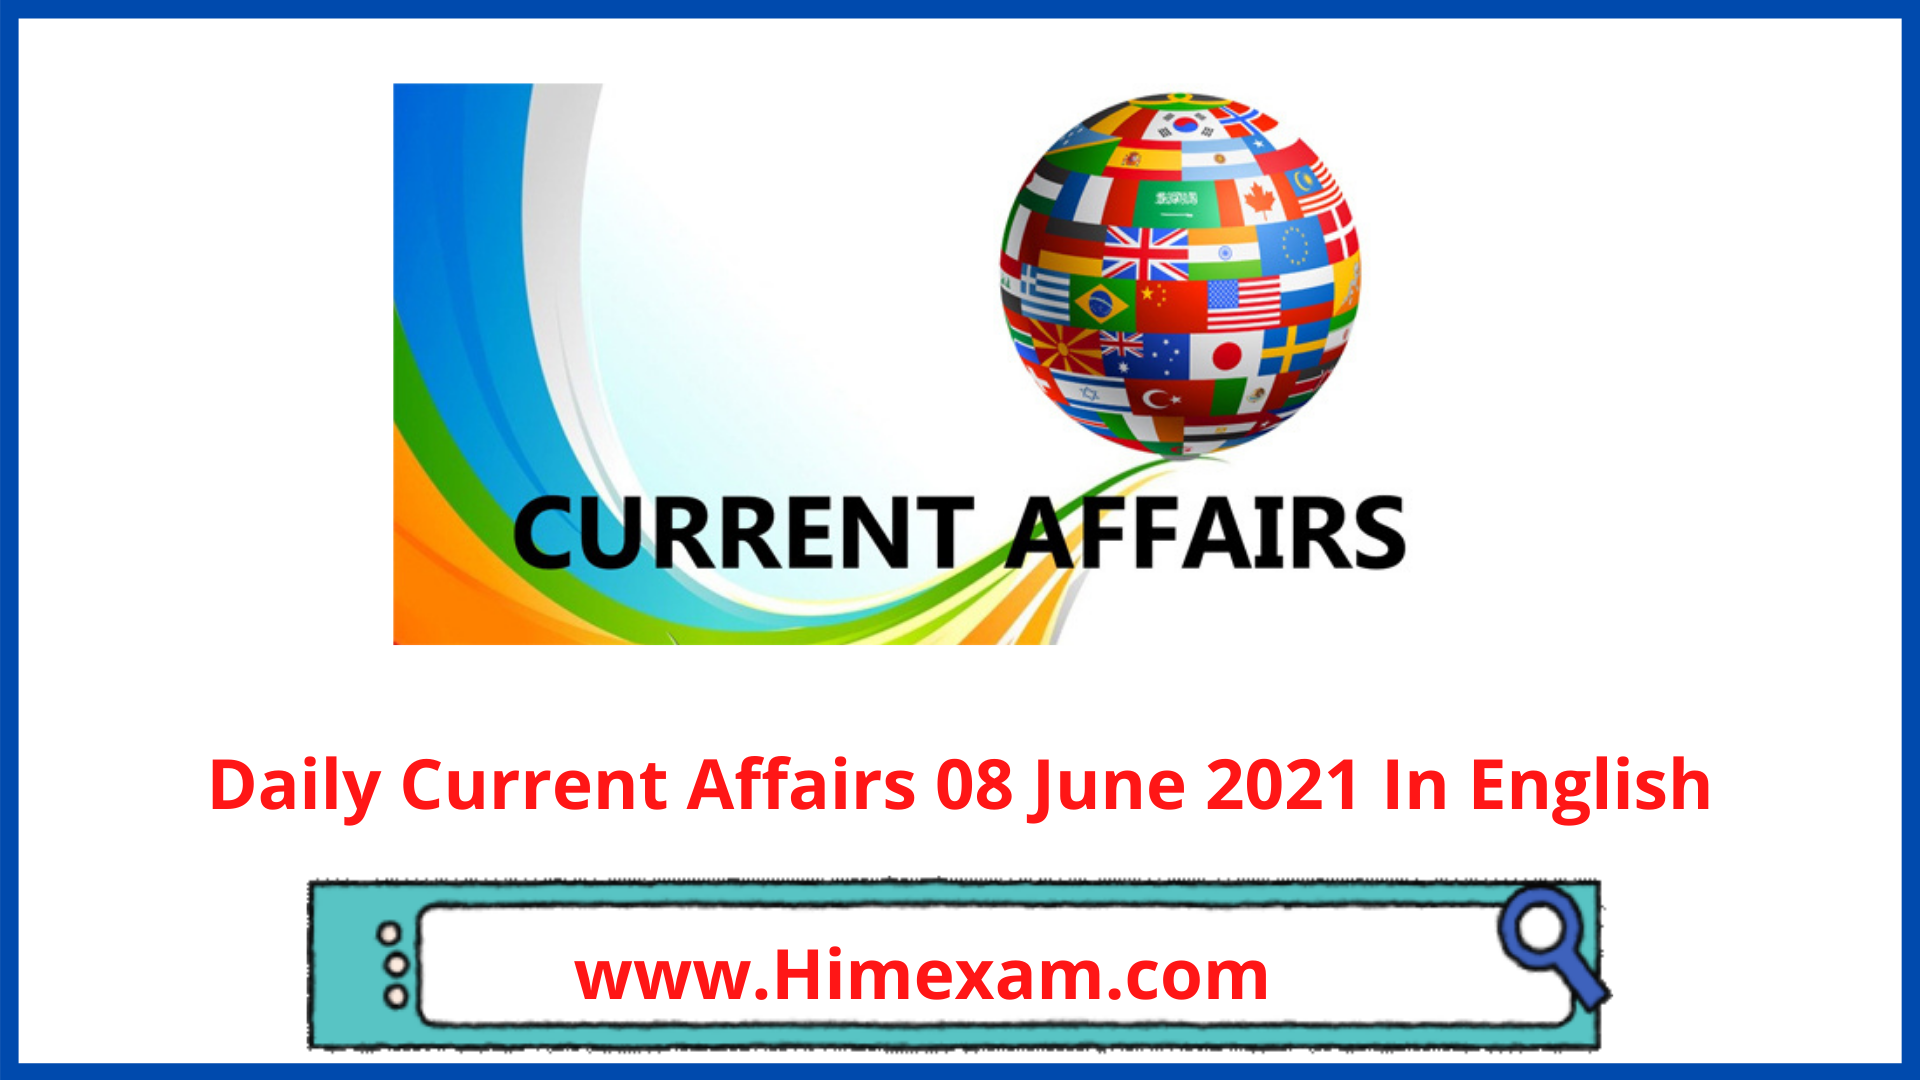 Daily Current Affairs 08 June 2021 In English